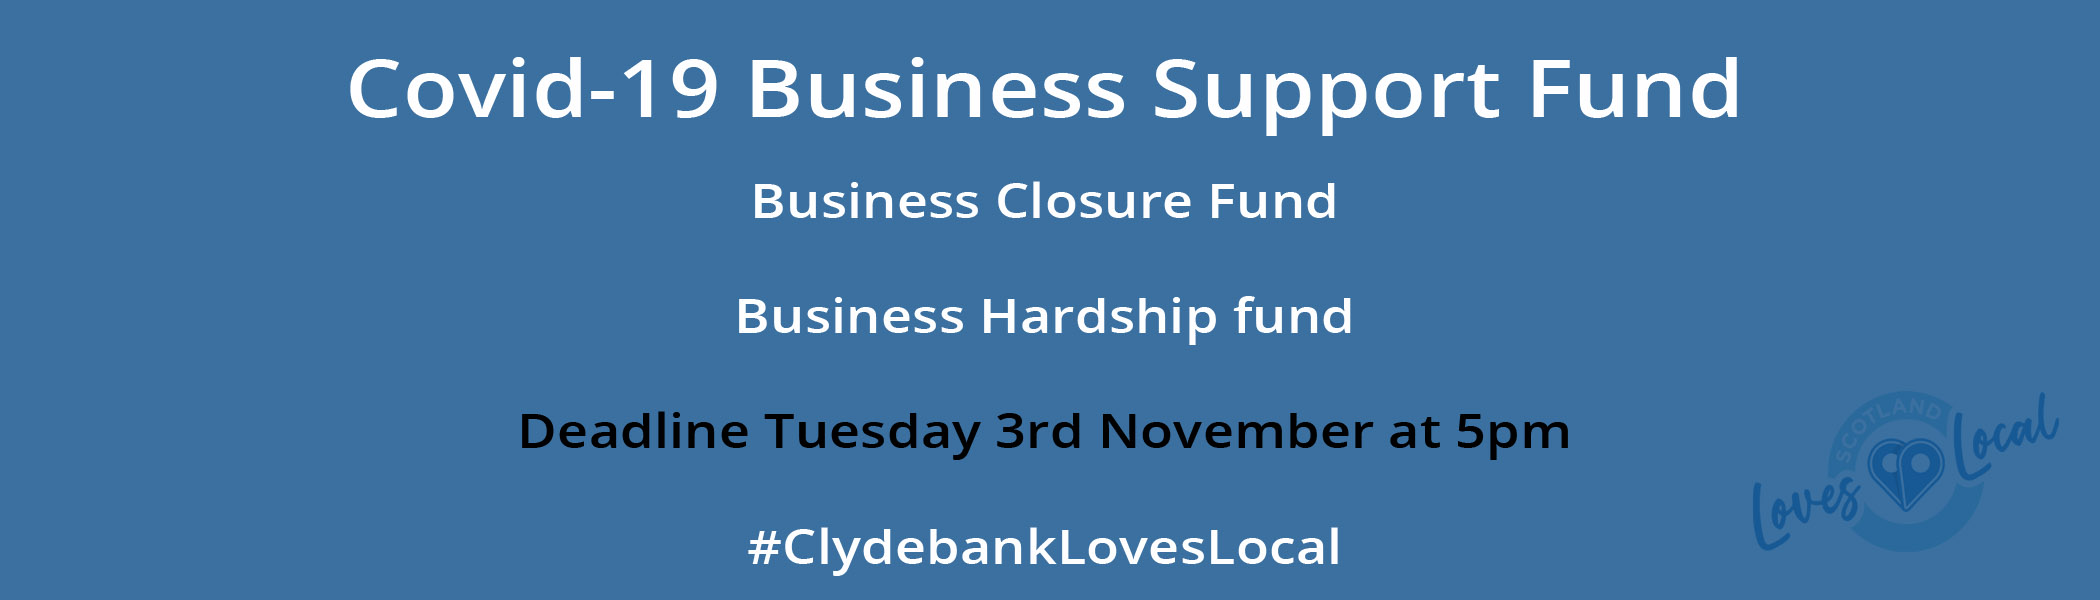 Clydebank Covid19 support fund